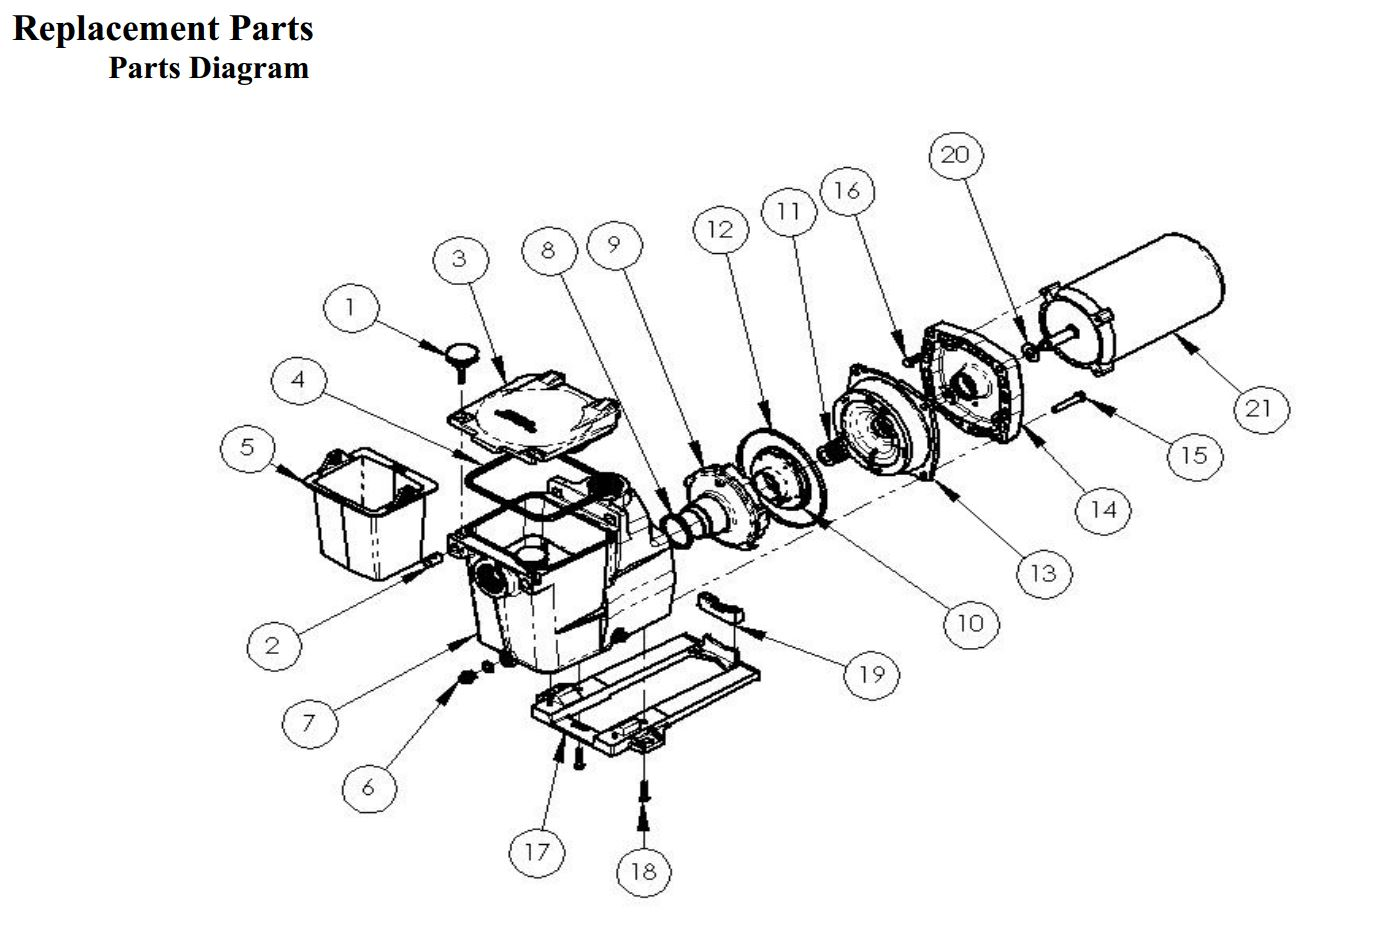 Hayward Sp2610x15 Super Pump 15 Hp Pool Relay Circuit Working Pdf Replacement Parts Diagram